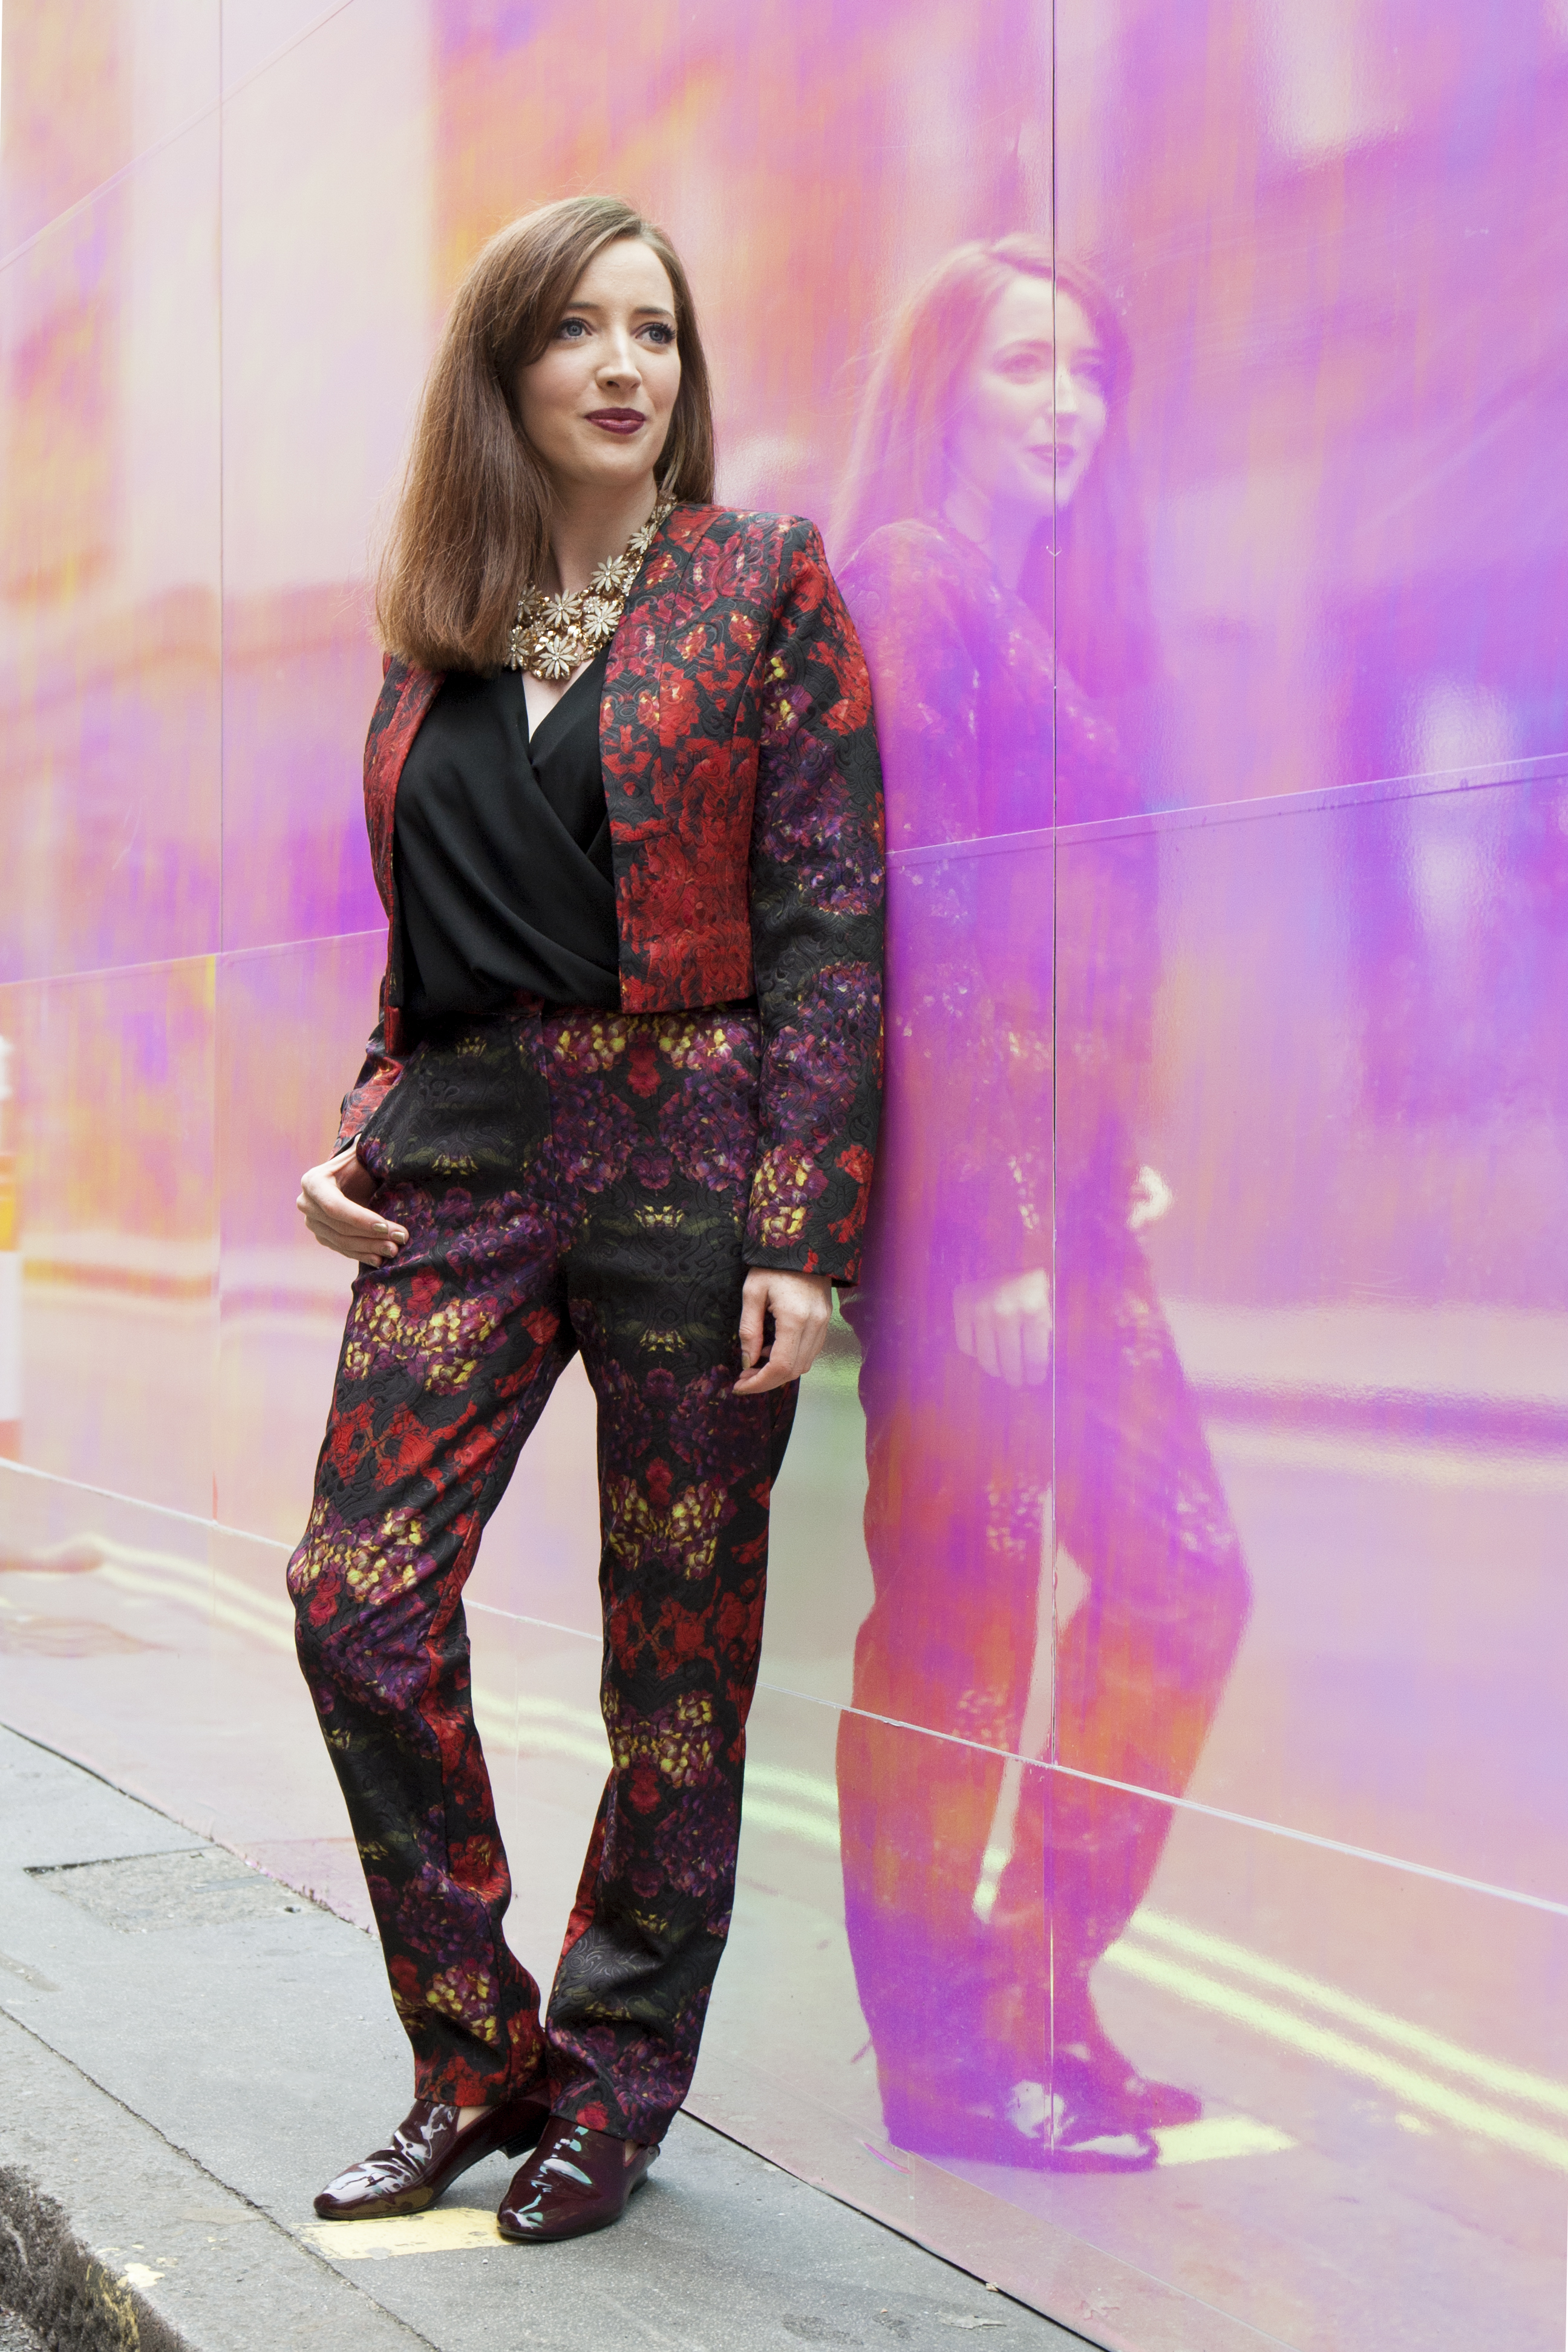 BecBoop London Fashion Week outfit